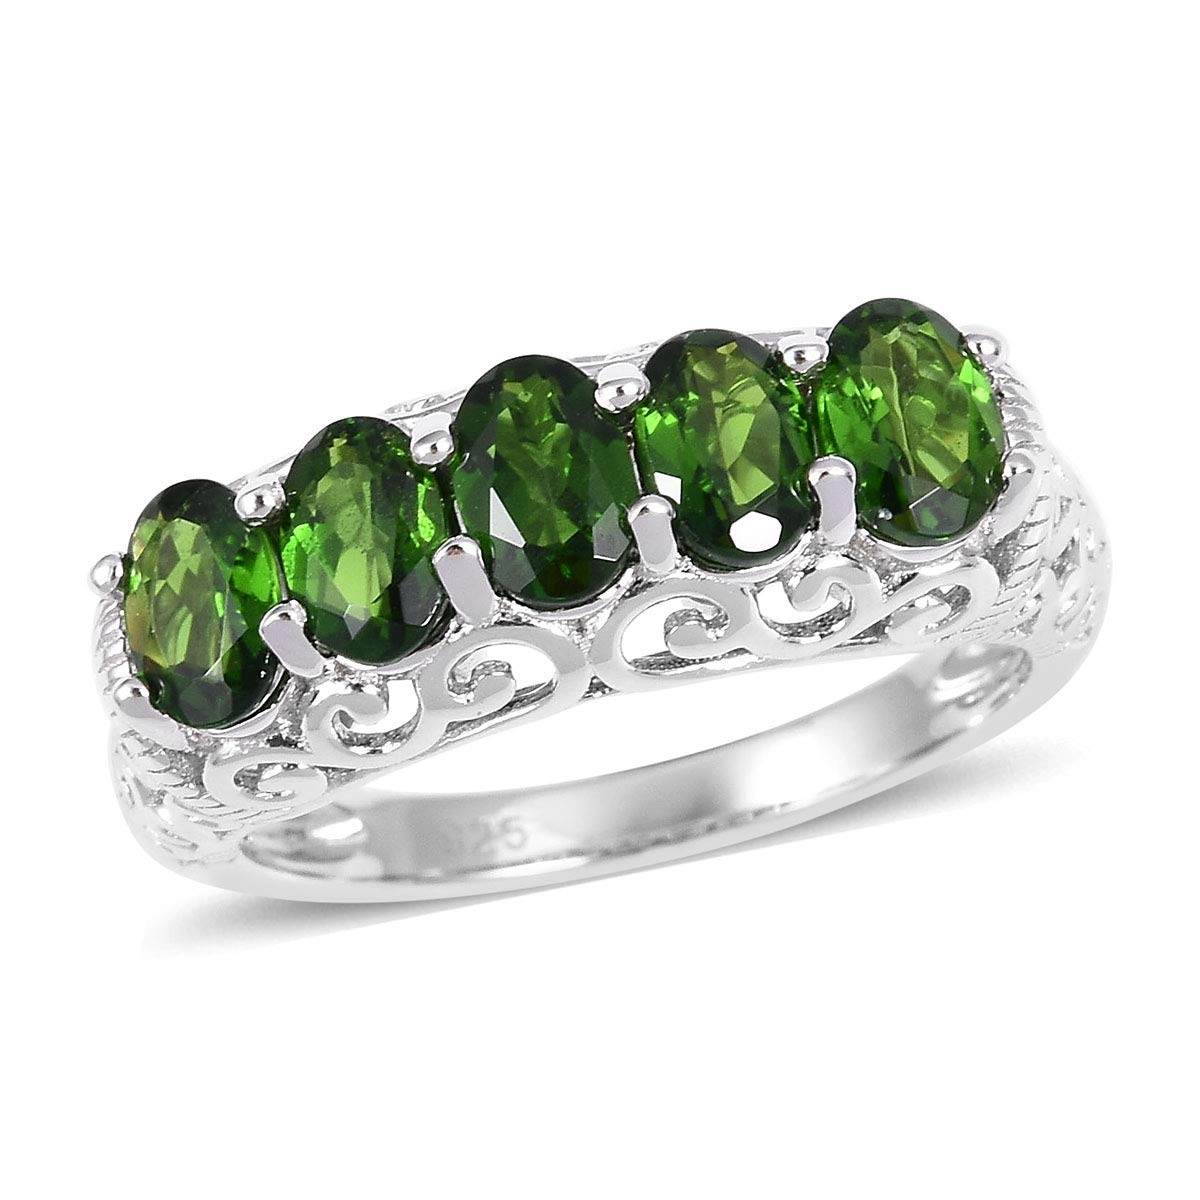 5 Stone Ring 925 Sterling Silver Oval Chrome Diopside Gift Jewelry for Women Size 5 Cttw 2.1